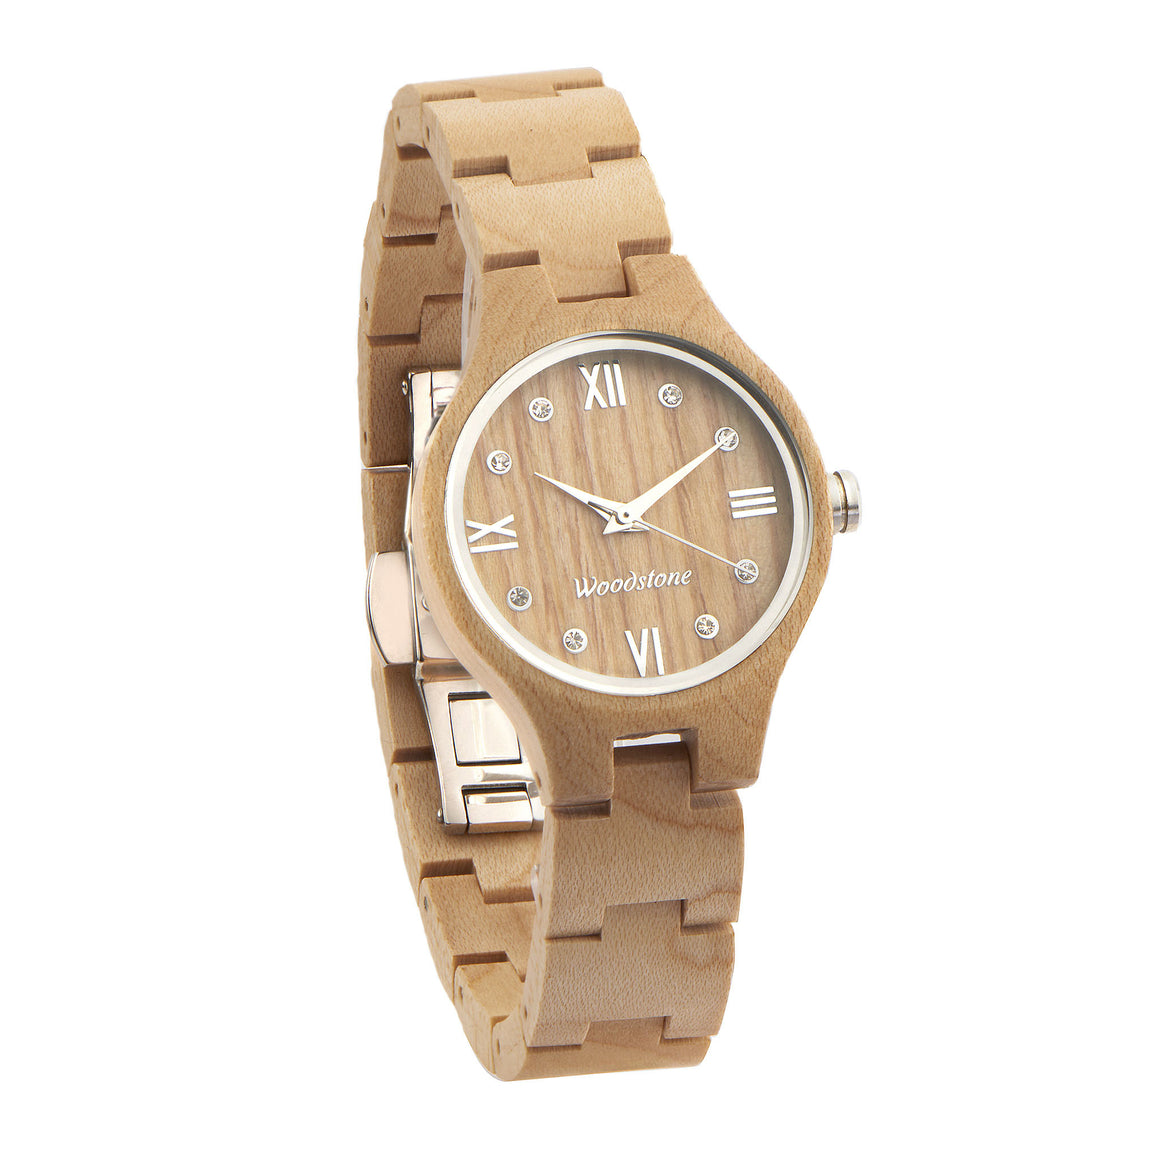 Queen maple wood wooden watch